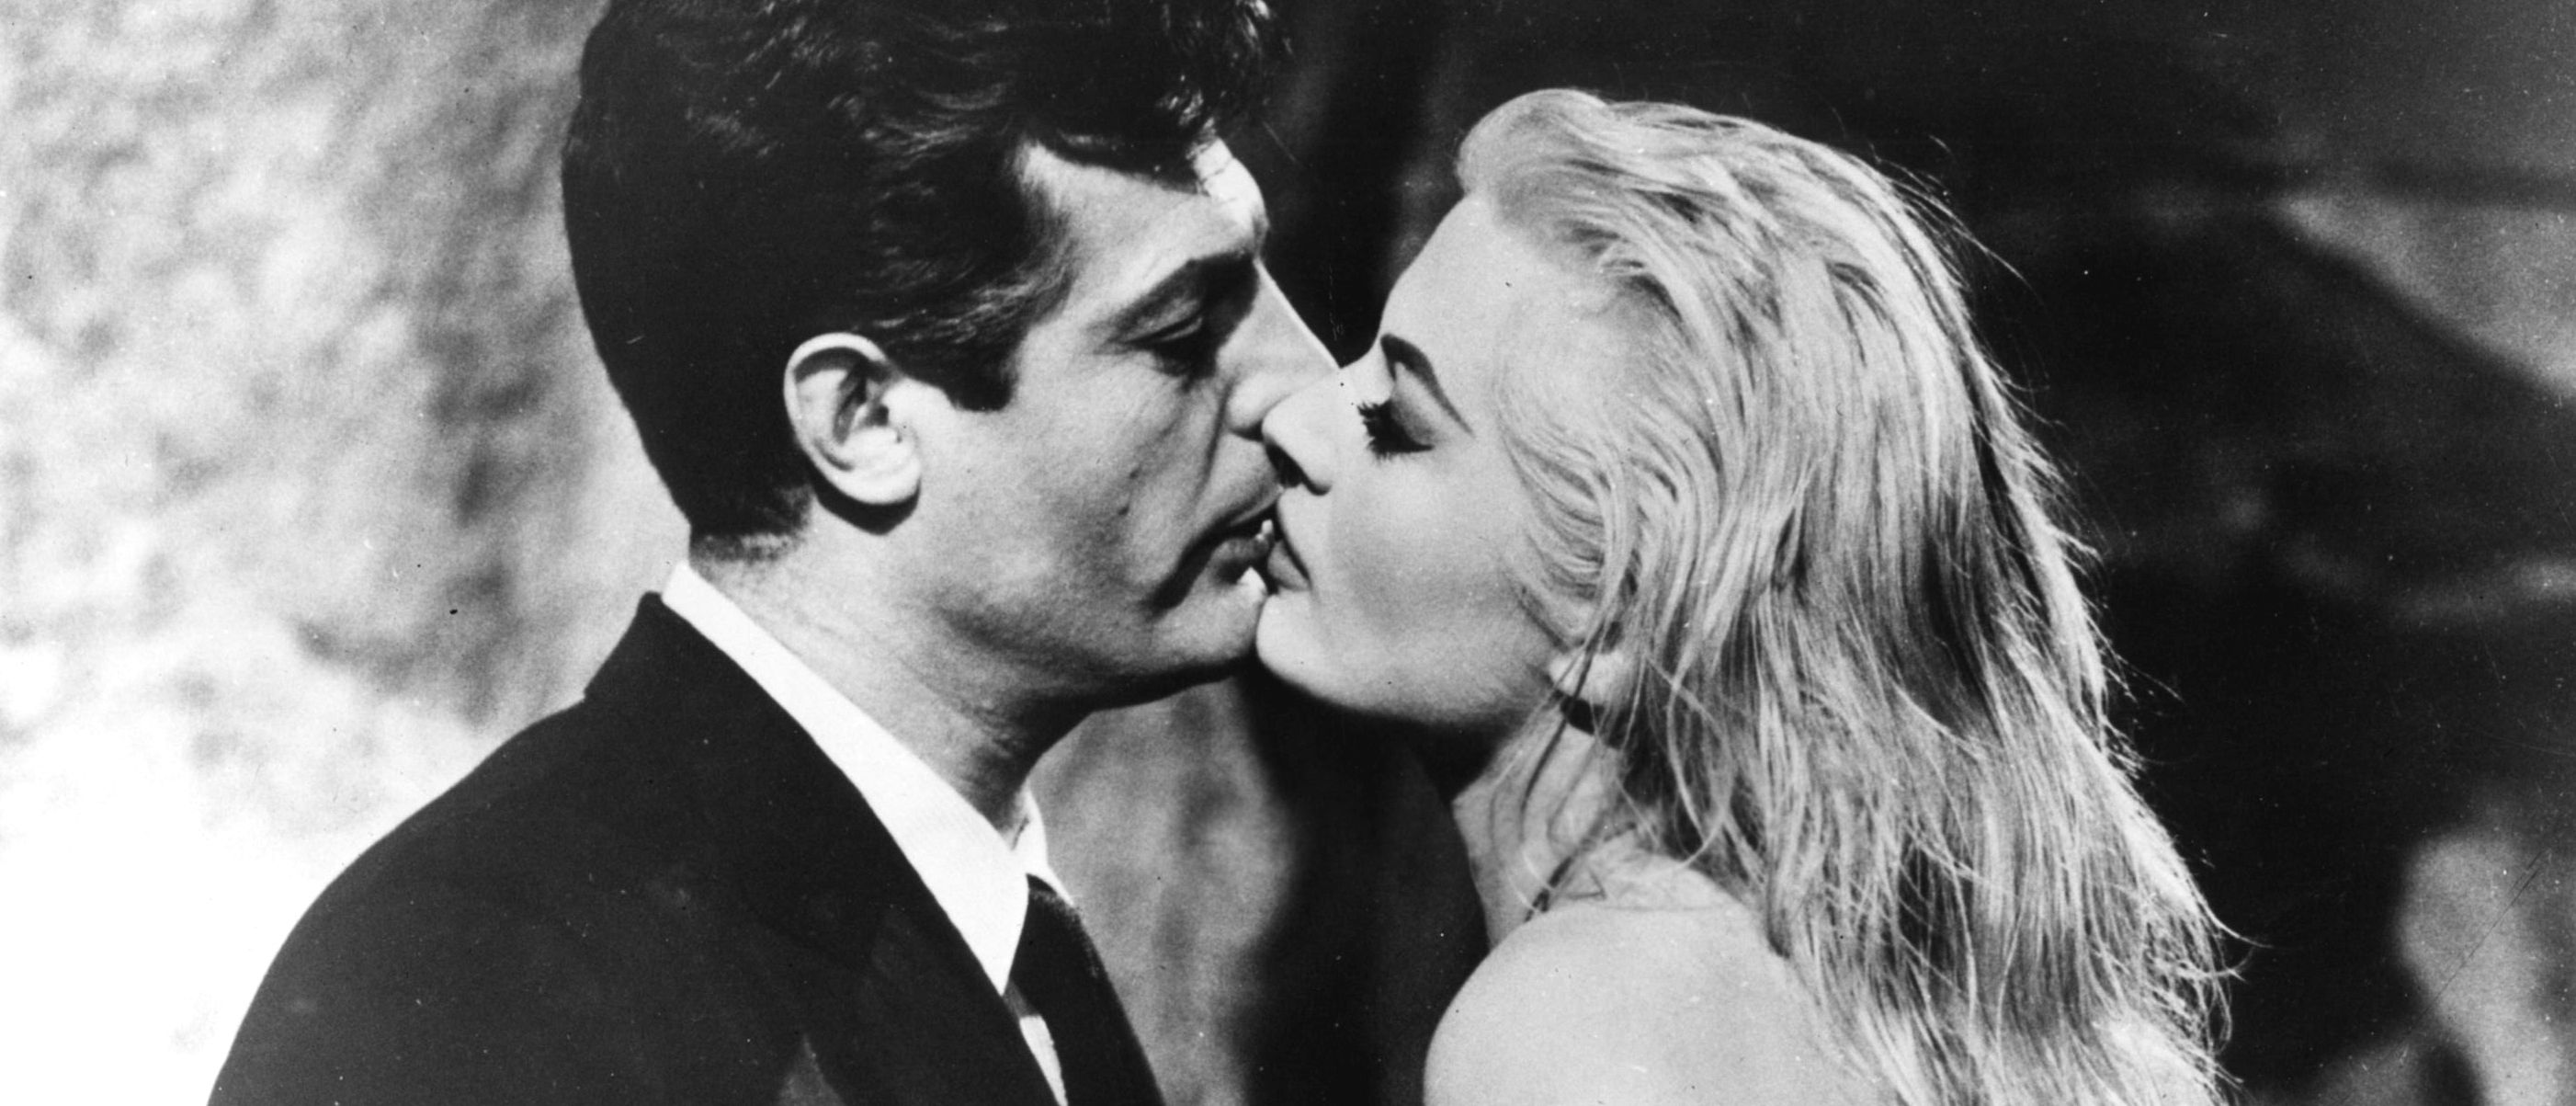 An image from La Dolce Vita